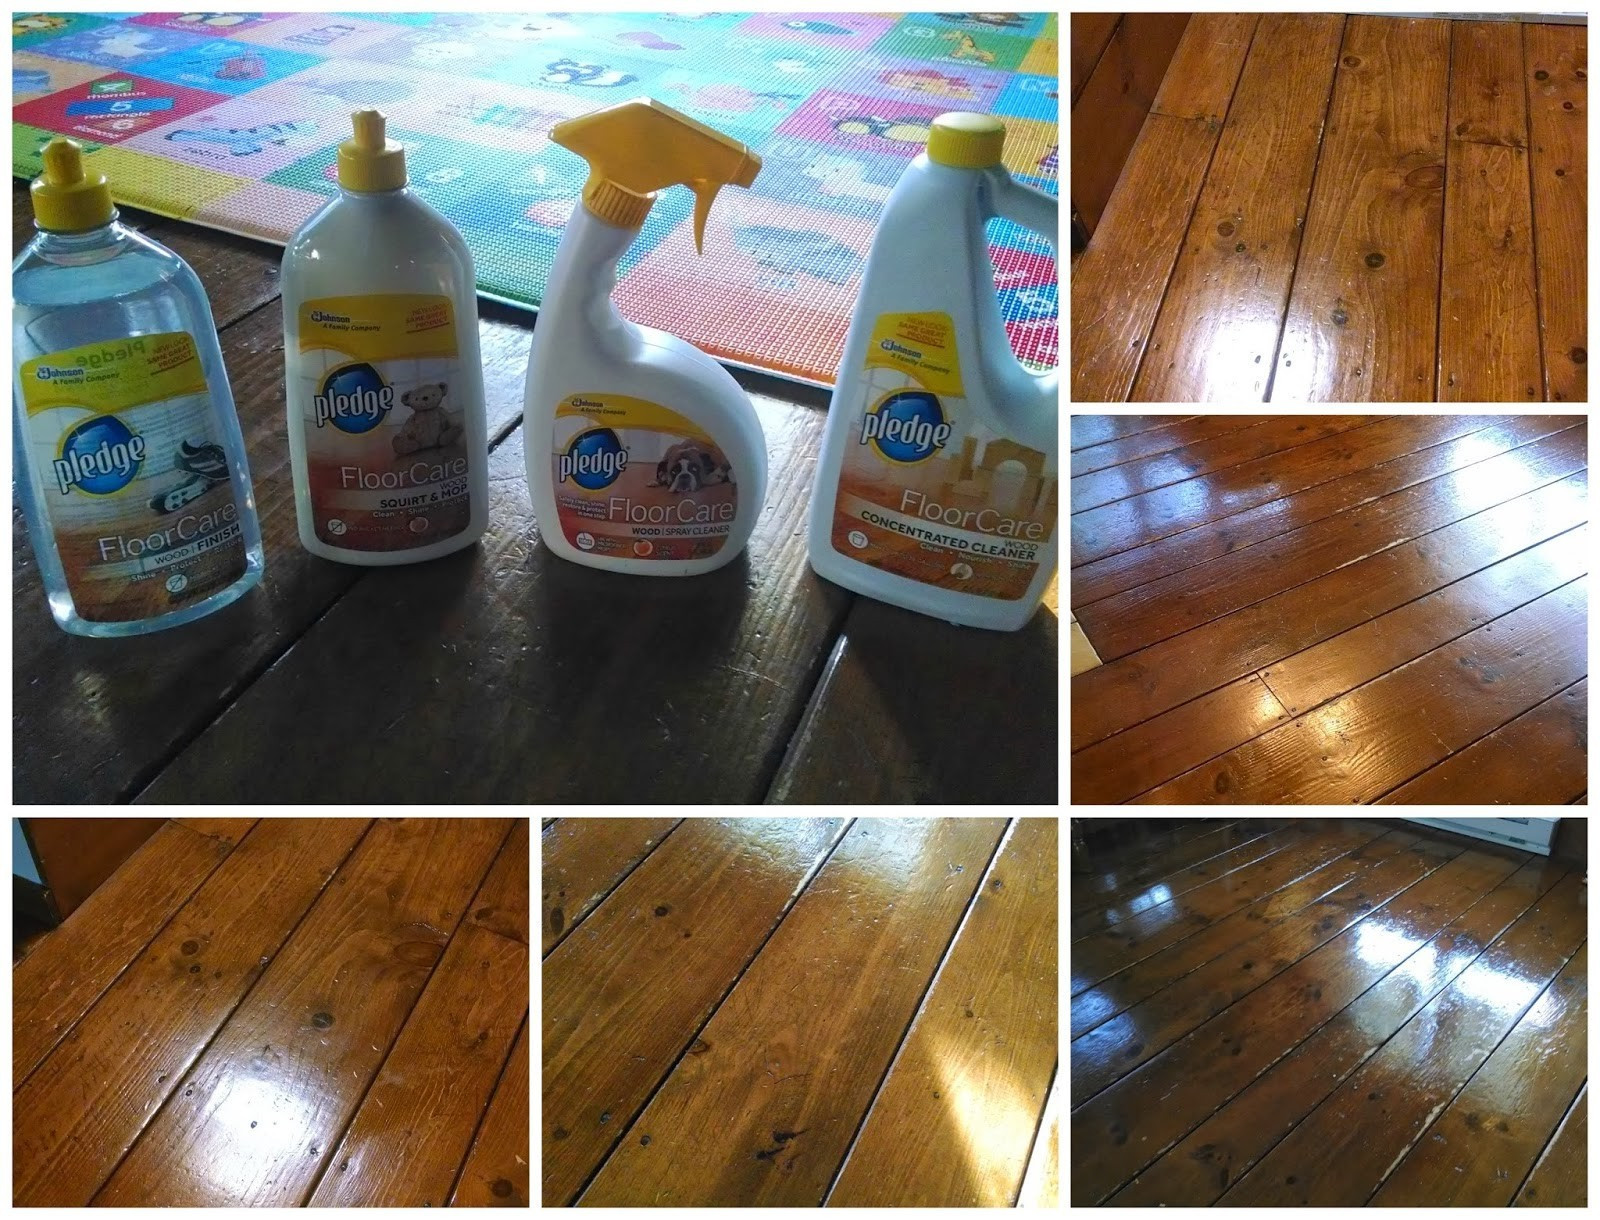 bruce hardwood flooring company of 17 awesome what to use to clean hardwood floors image dizpos com for what to use to clean hardwood floors fresh 24 best pics best ways to clean hardwood